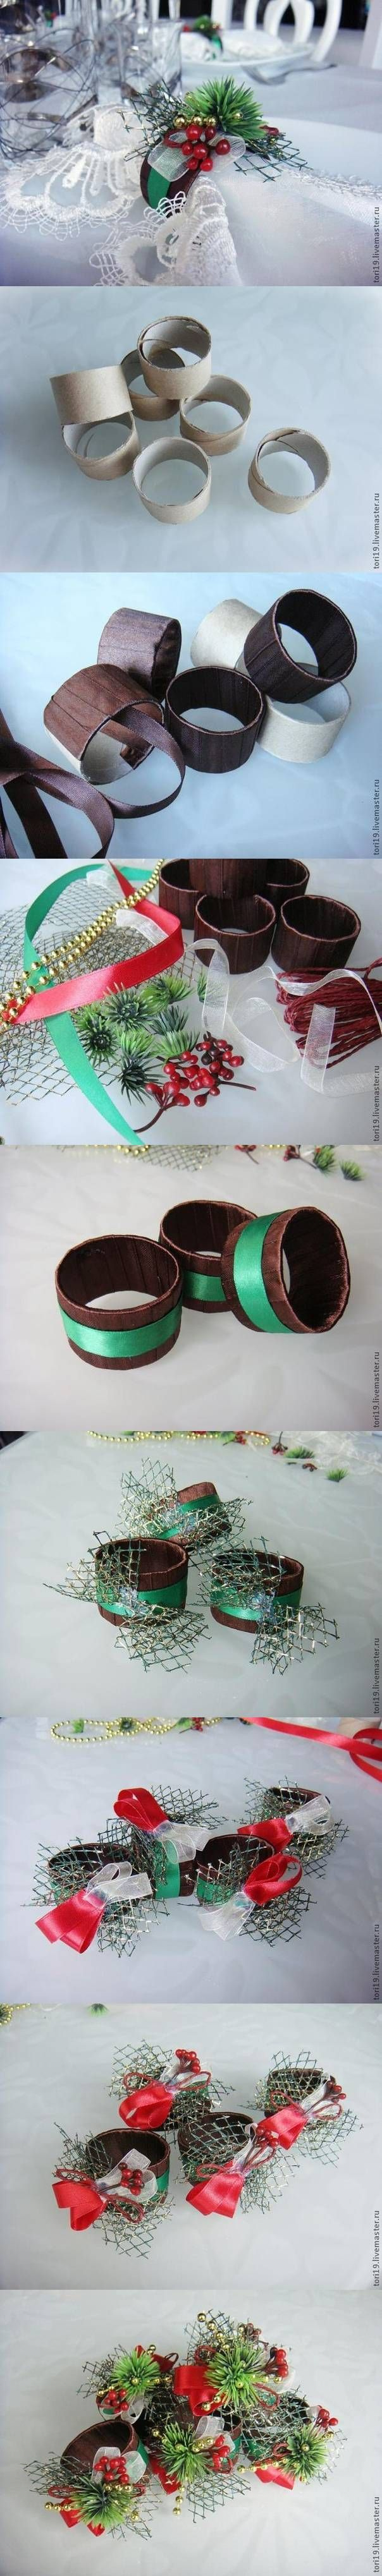 Diy Toilet Paper Roll Decorative Napkin Rings Toilets